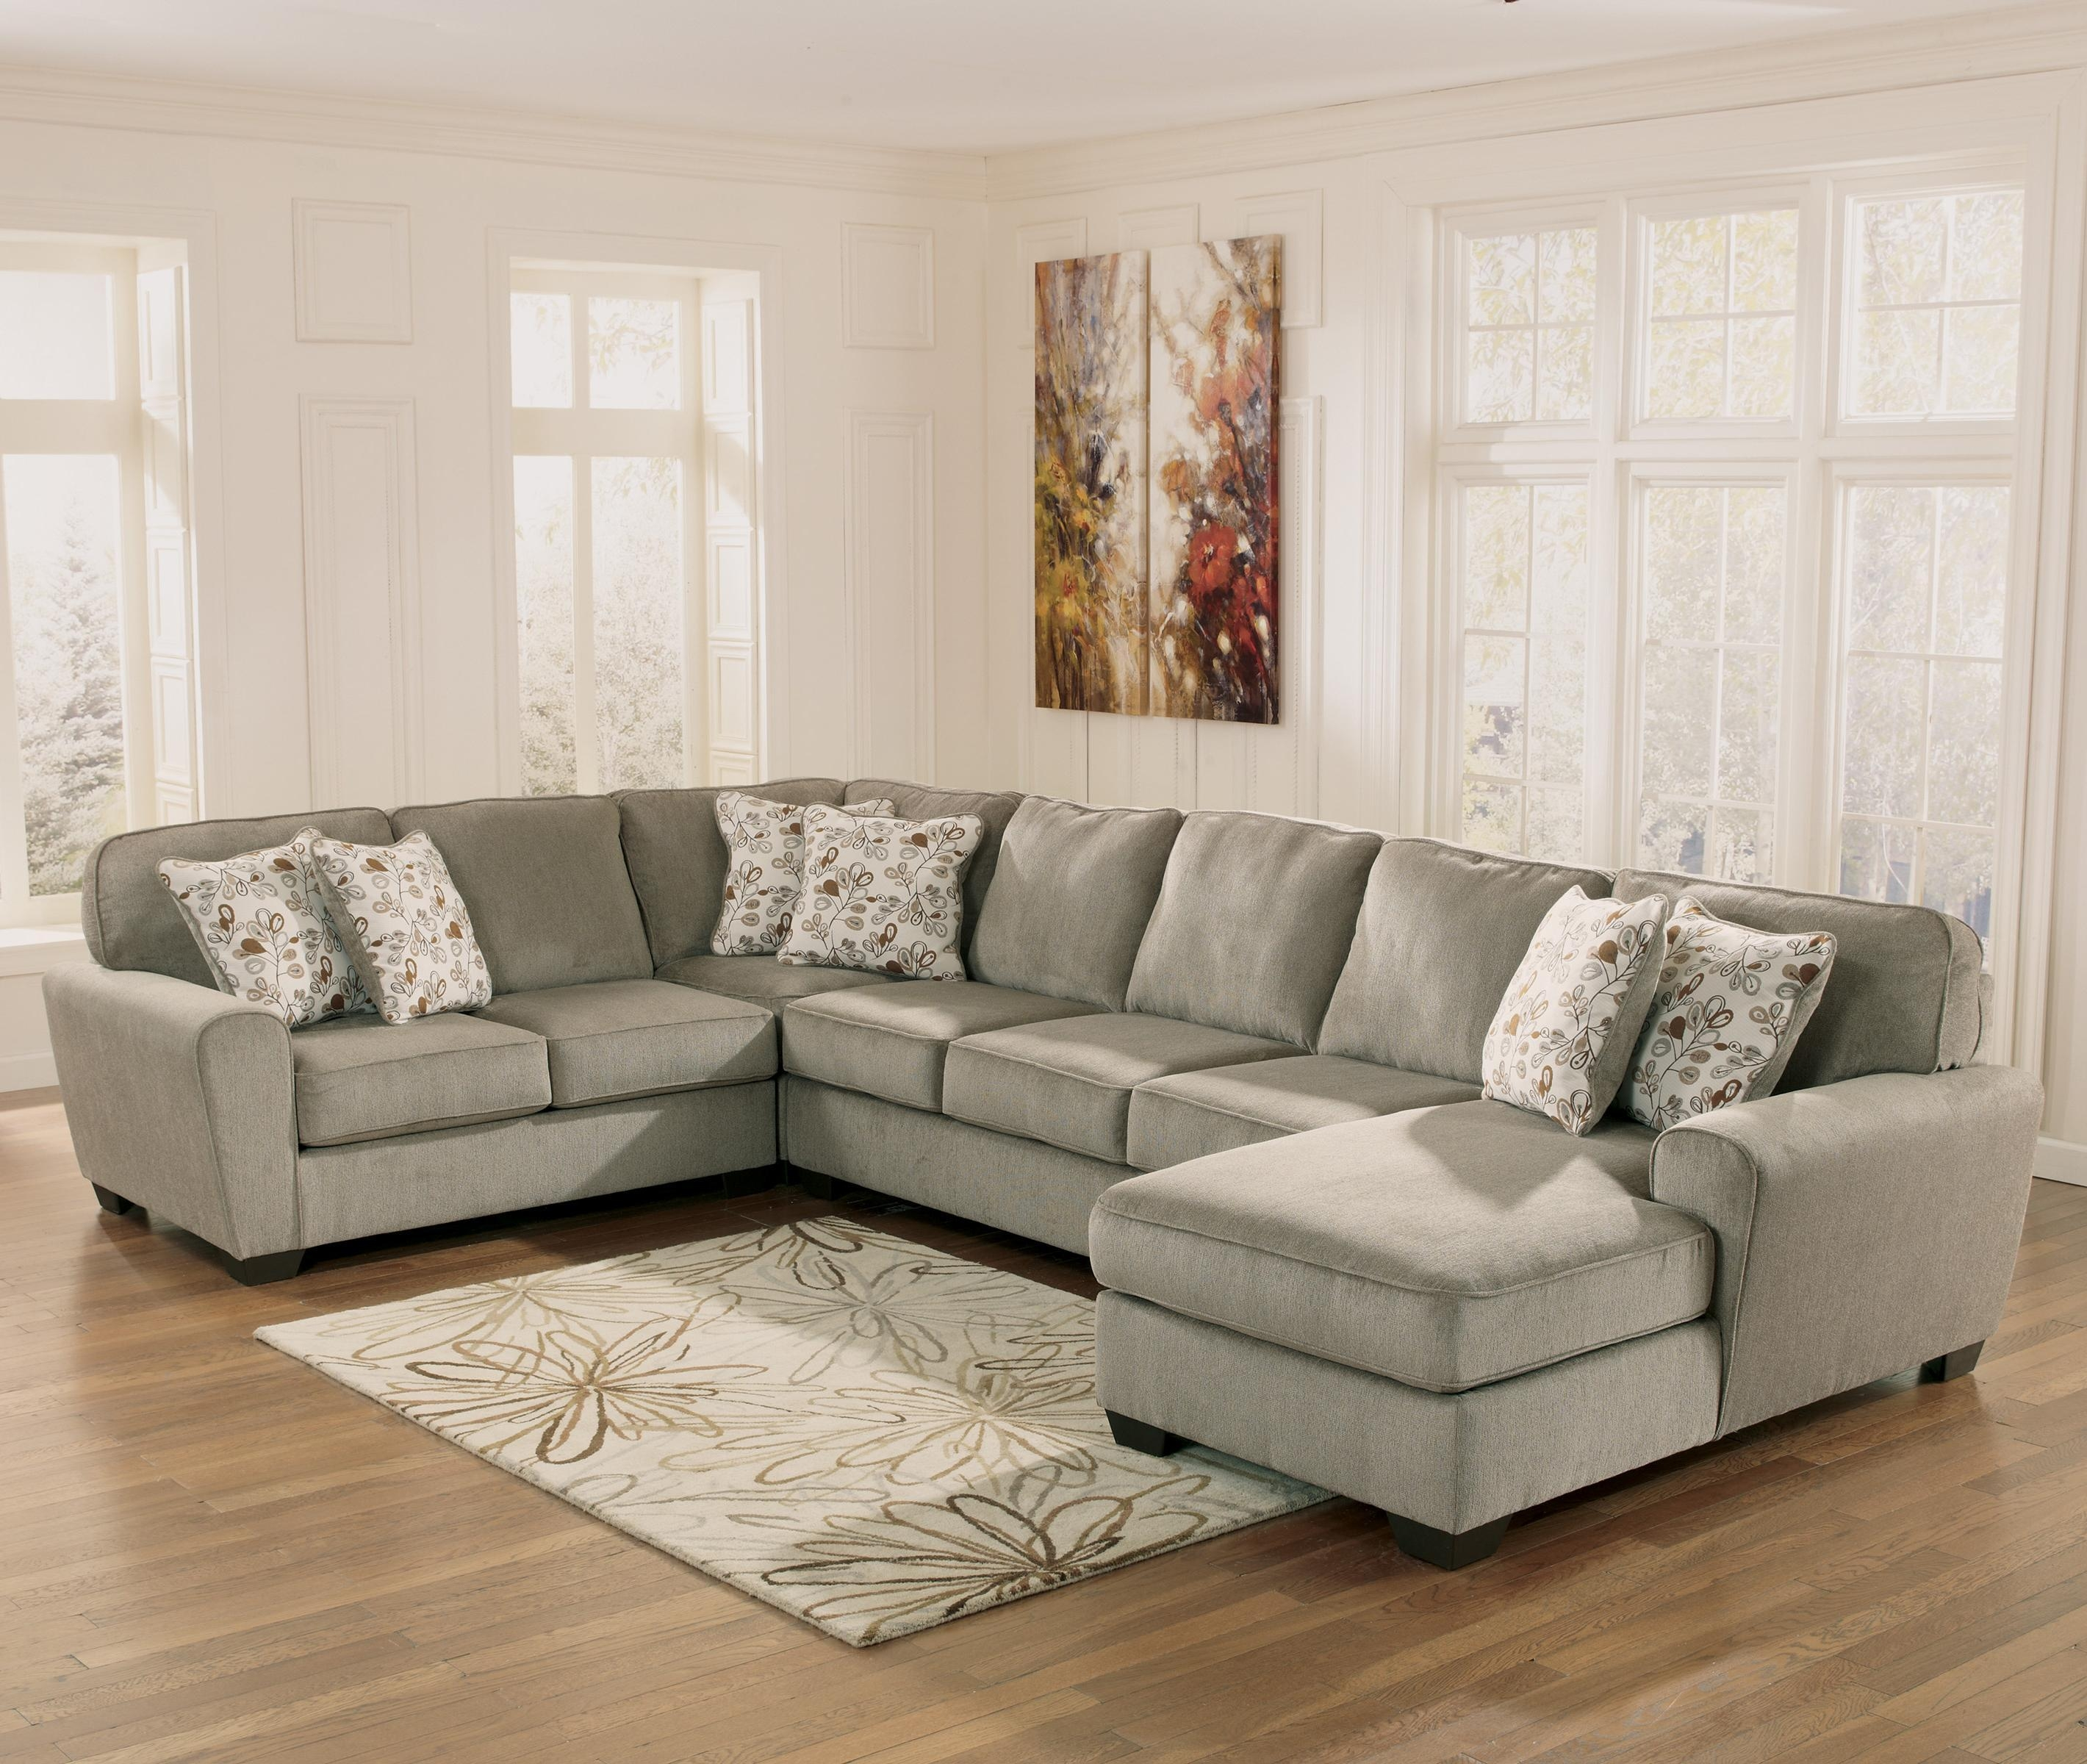 Ashley Furniture Patola Park – Patina 4 Piece Sectional With Right In Ashley Corduroy Sectional Sofas (Image 2 of 20)